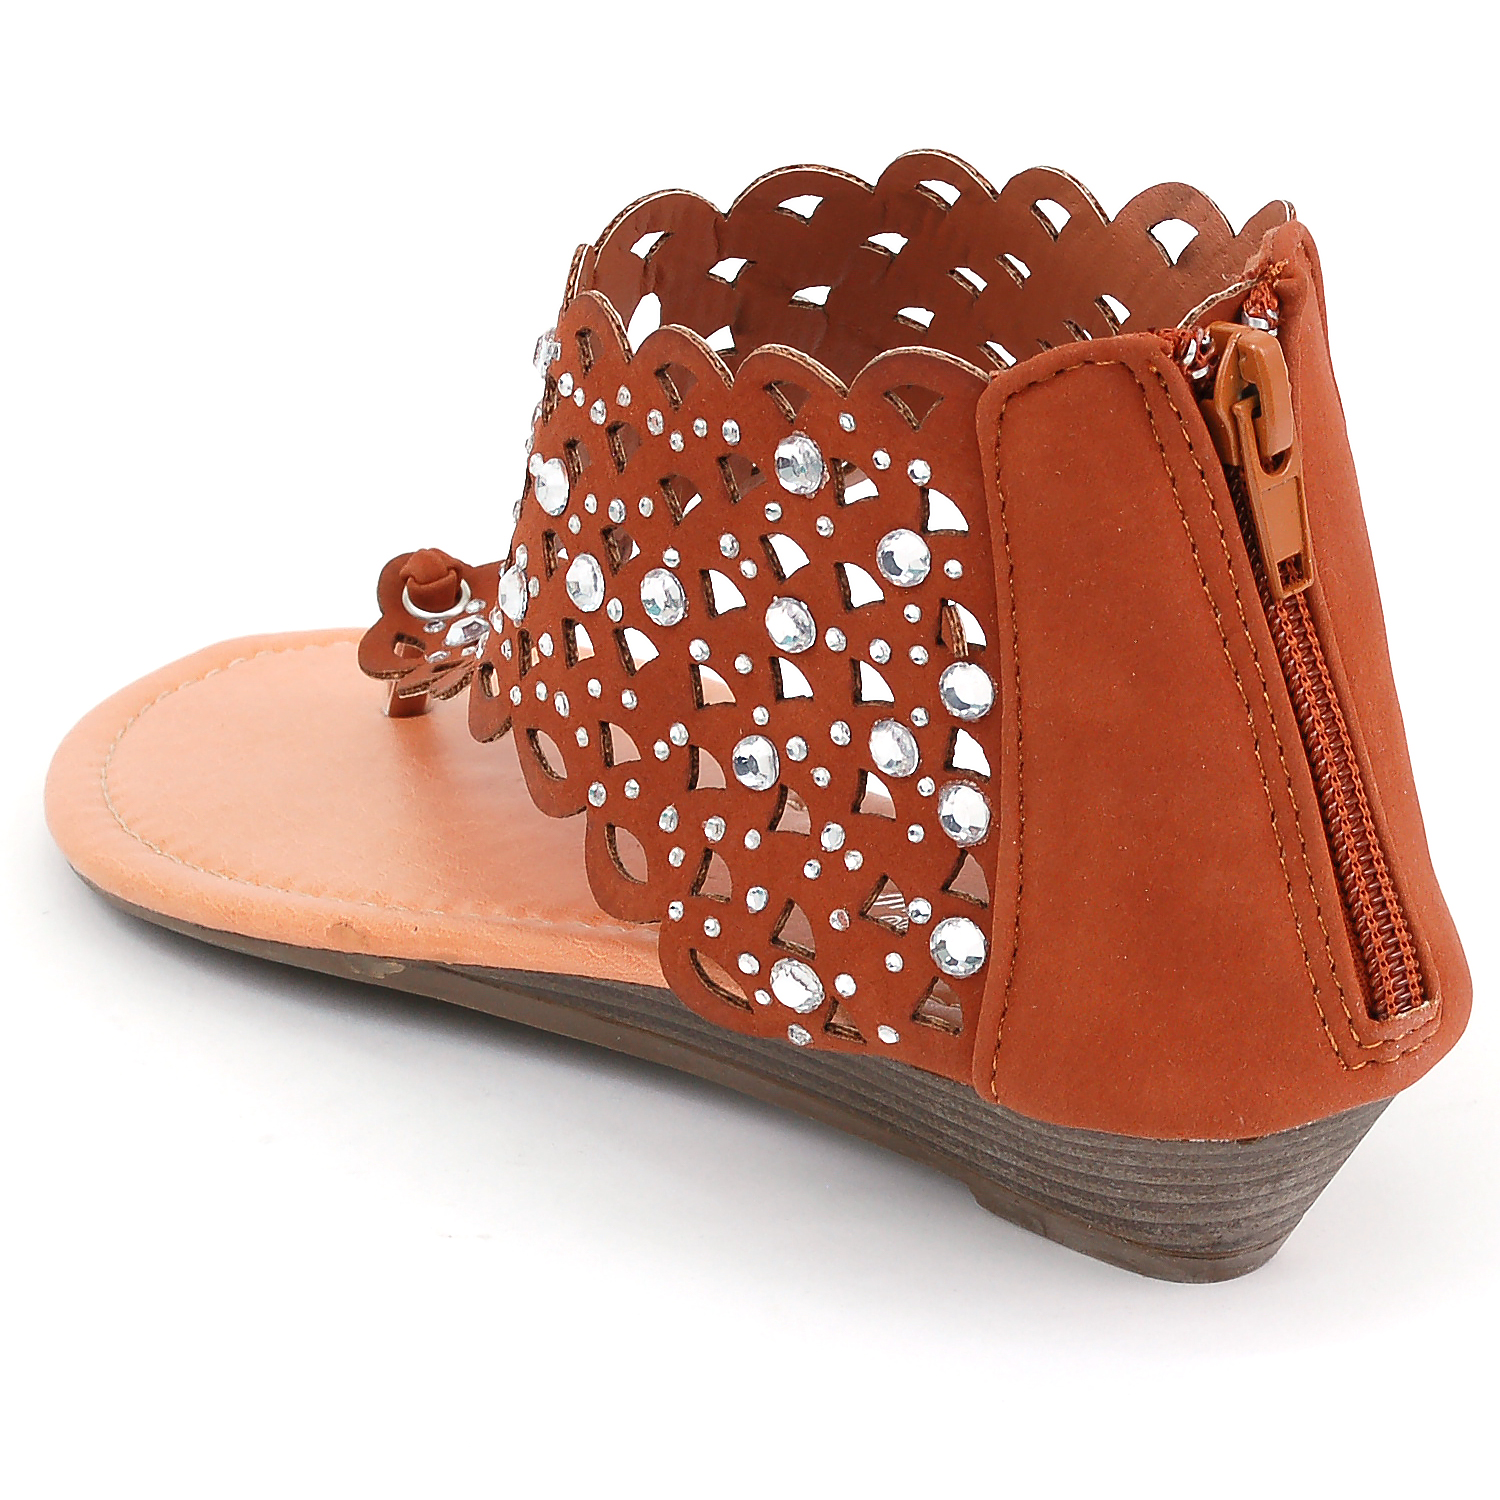 38555a10e Luo Luo - Womens Gladiator Sandals Wedge Heel Thongs Dressy Ankle Wrap  Shoes W Rhinestone - Walmart.com